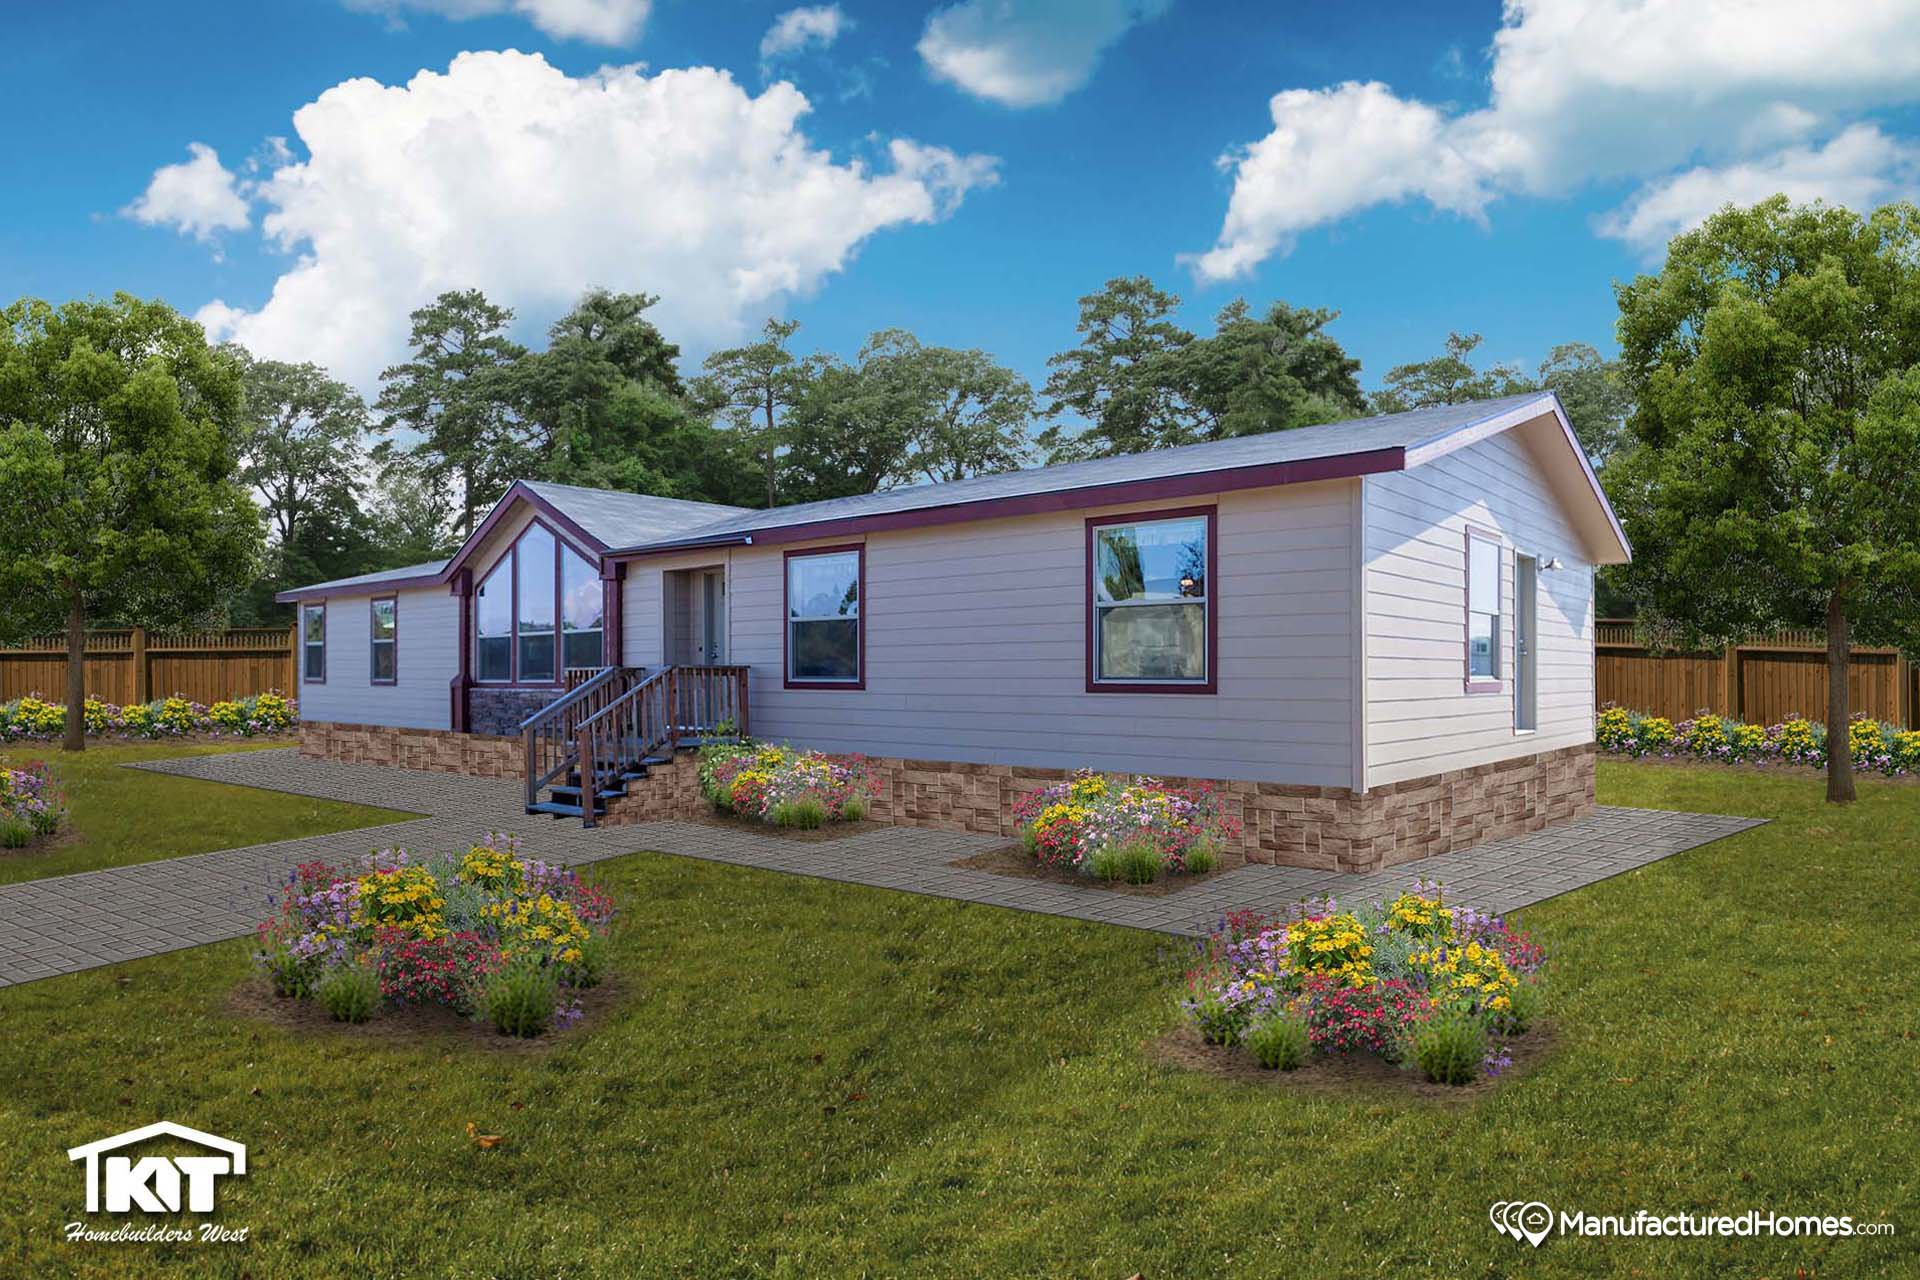 Big mountain homes in gillette wy manufactured home dealer for Kit west homes